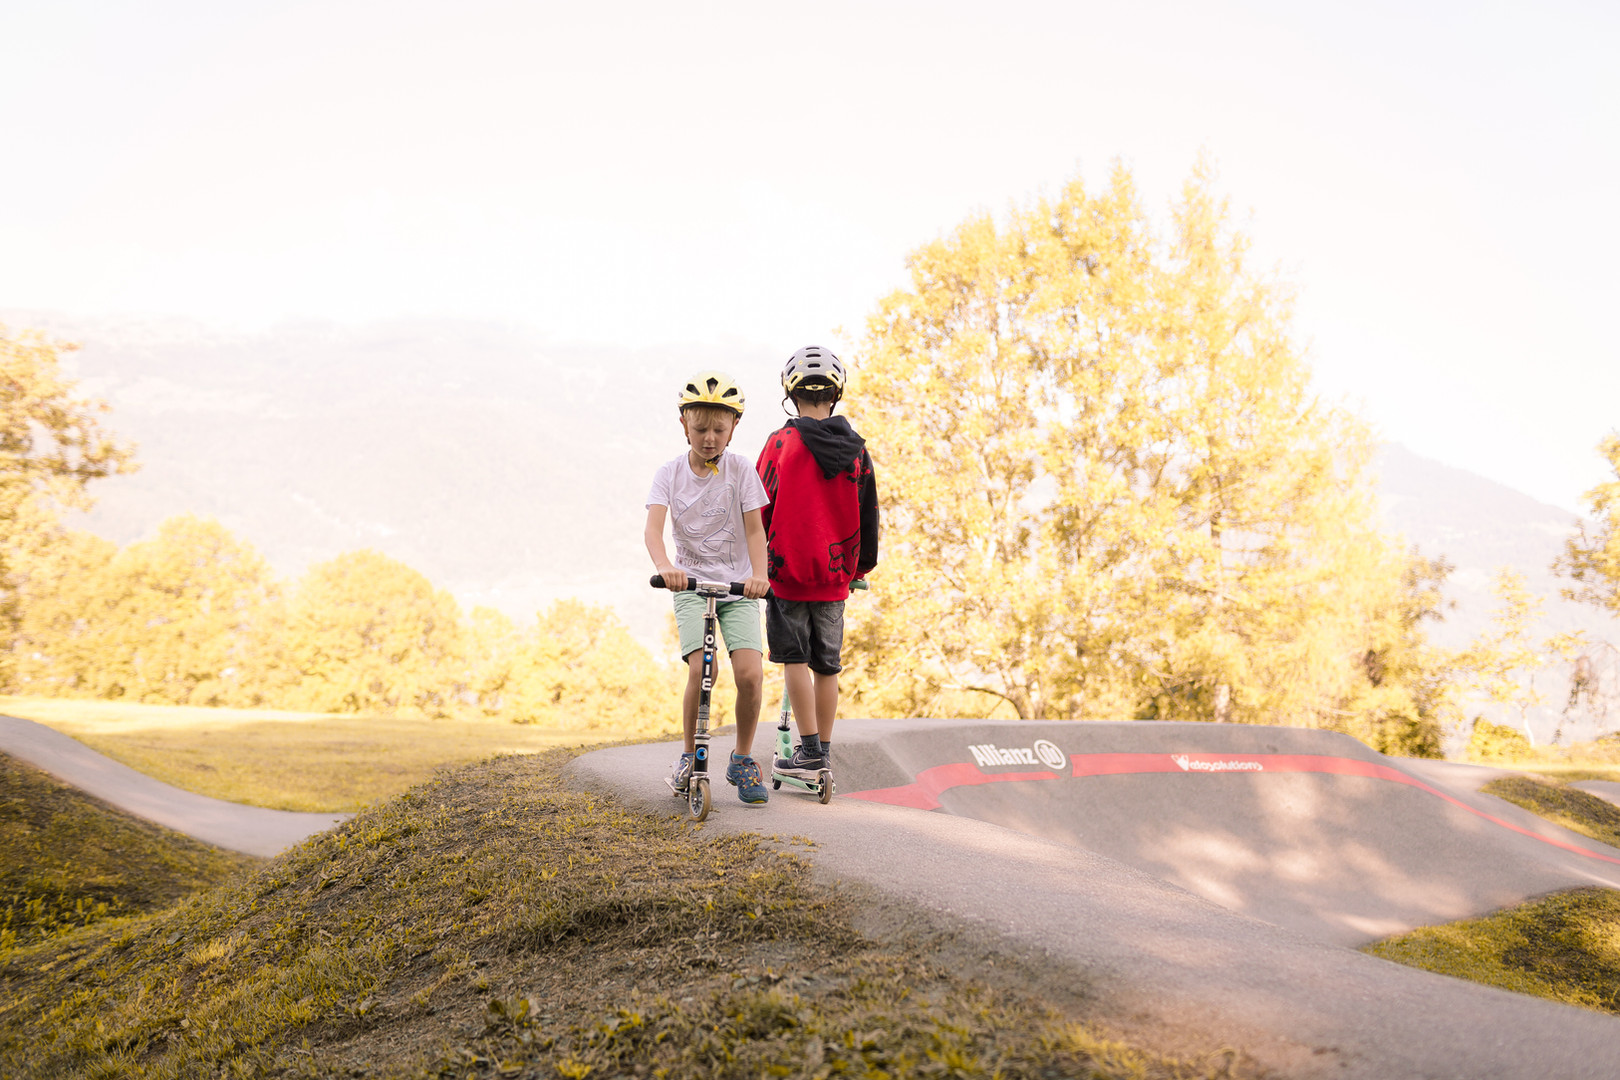 Pumptrack120920-019.jpg